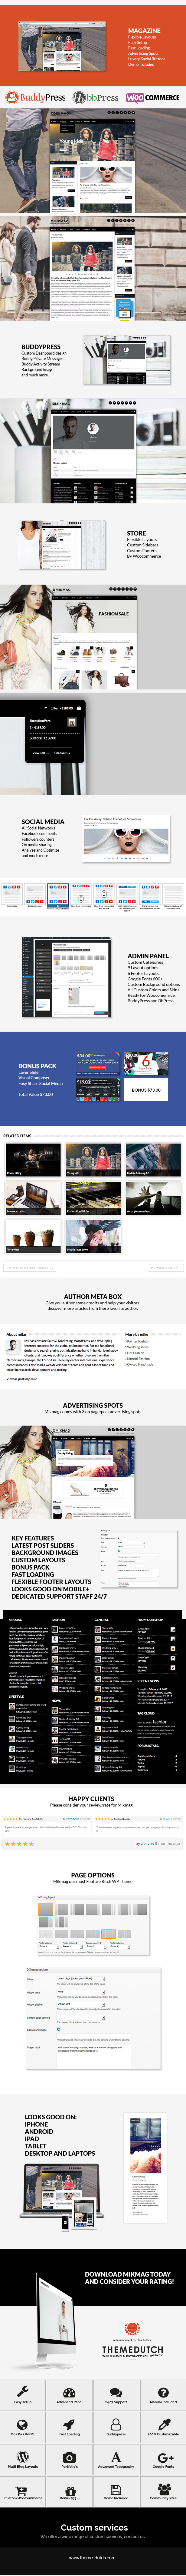 BuddyPress, Magazine and Store wp theme